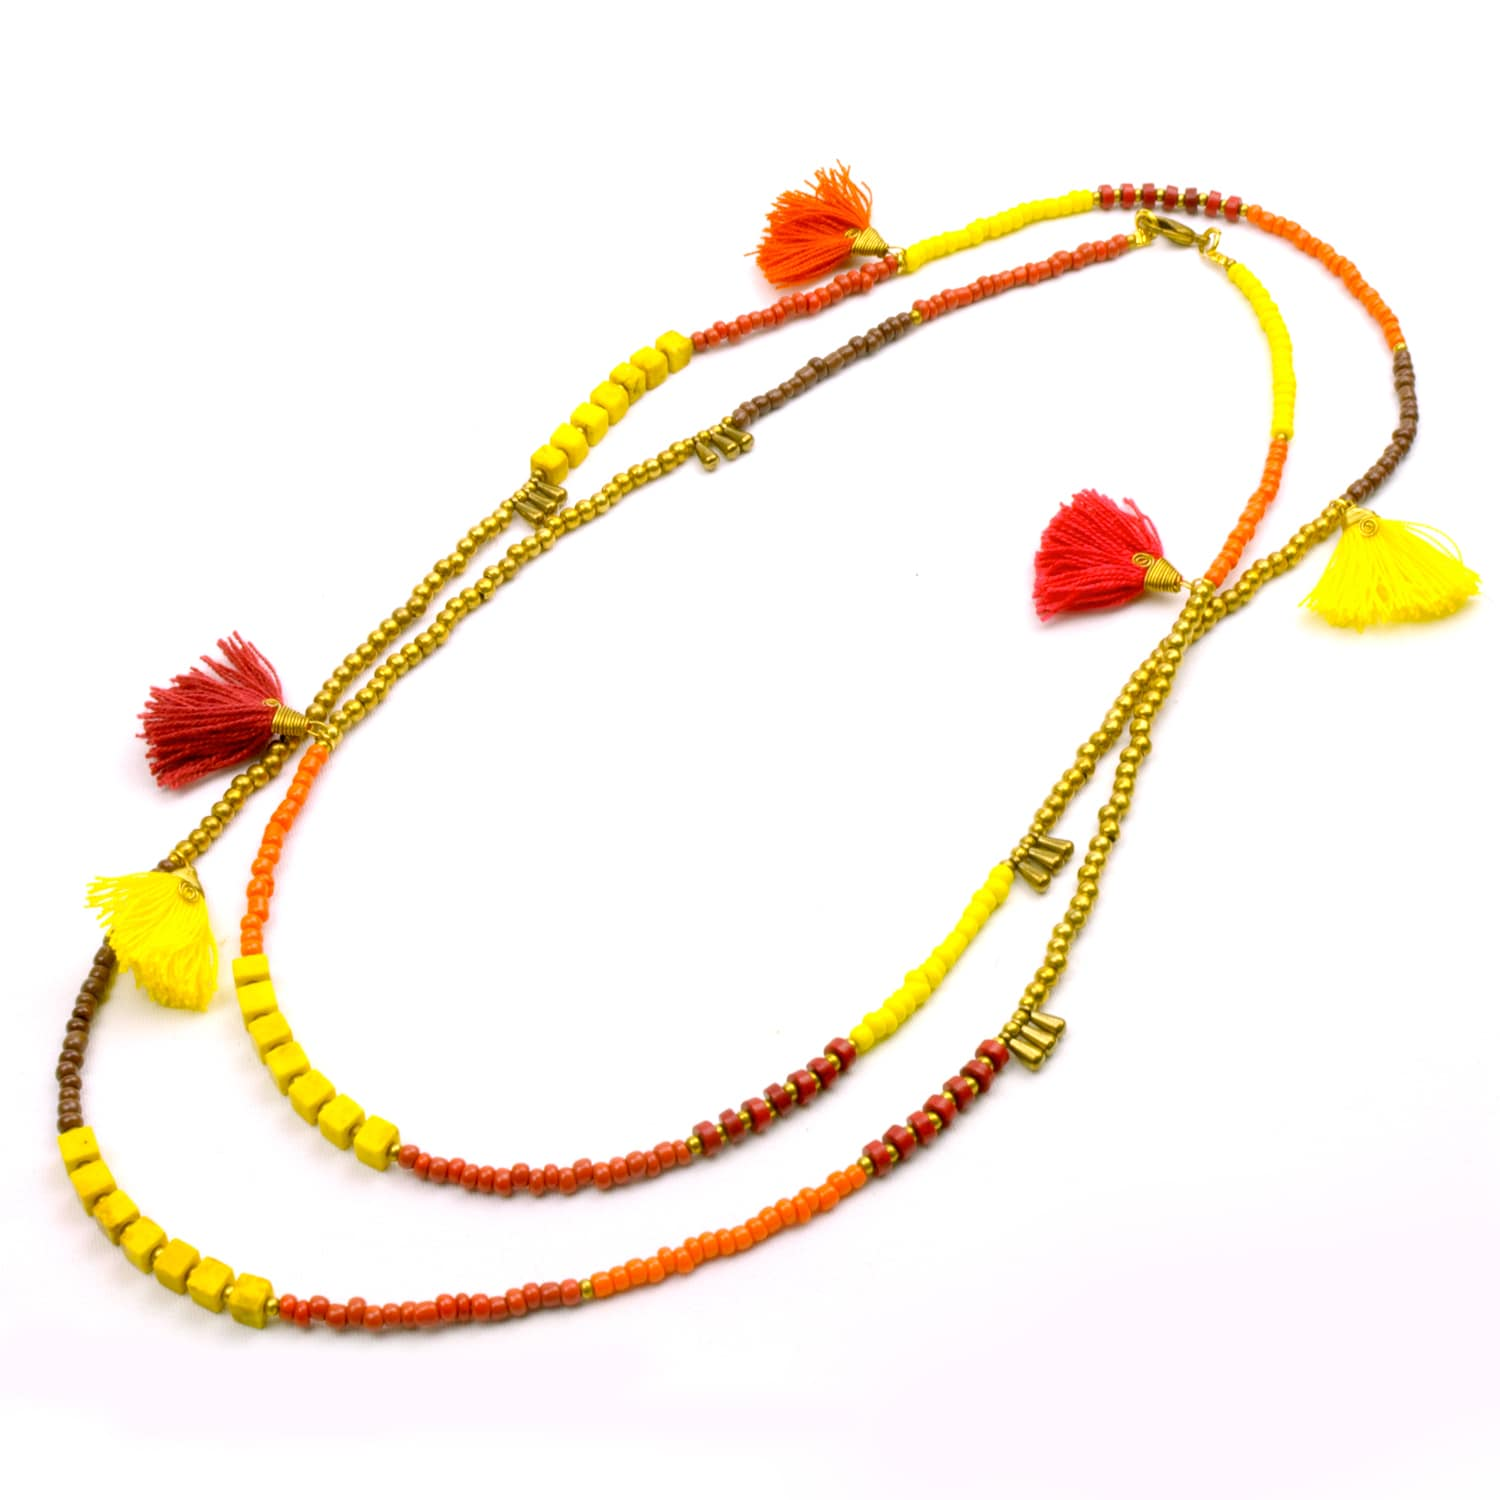 Global Crafts Handmade Fire Kerala 3-in-1 Necklace - Glob...